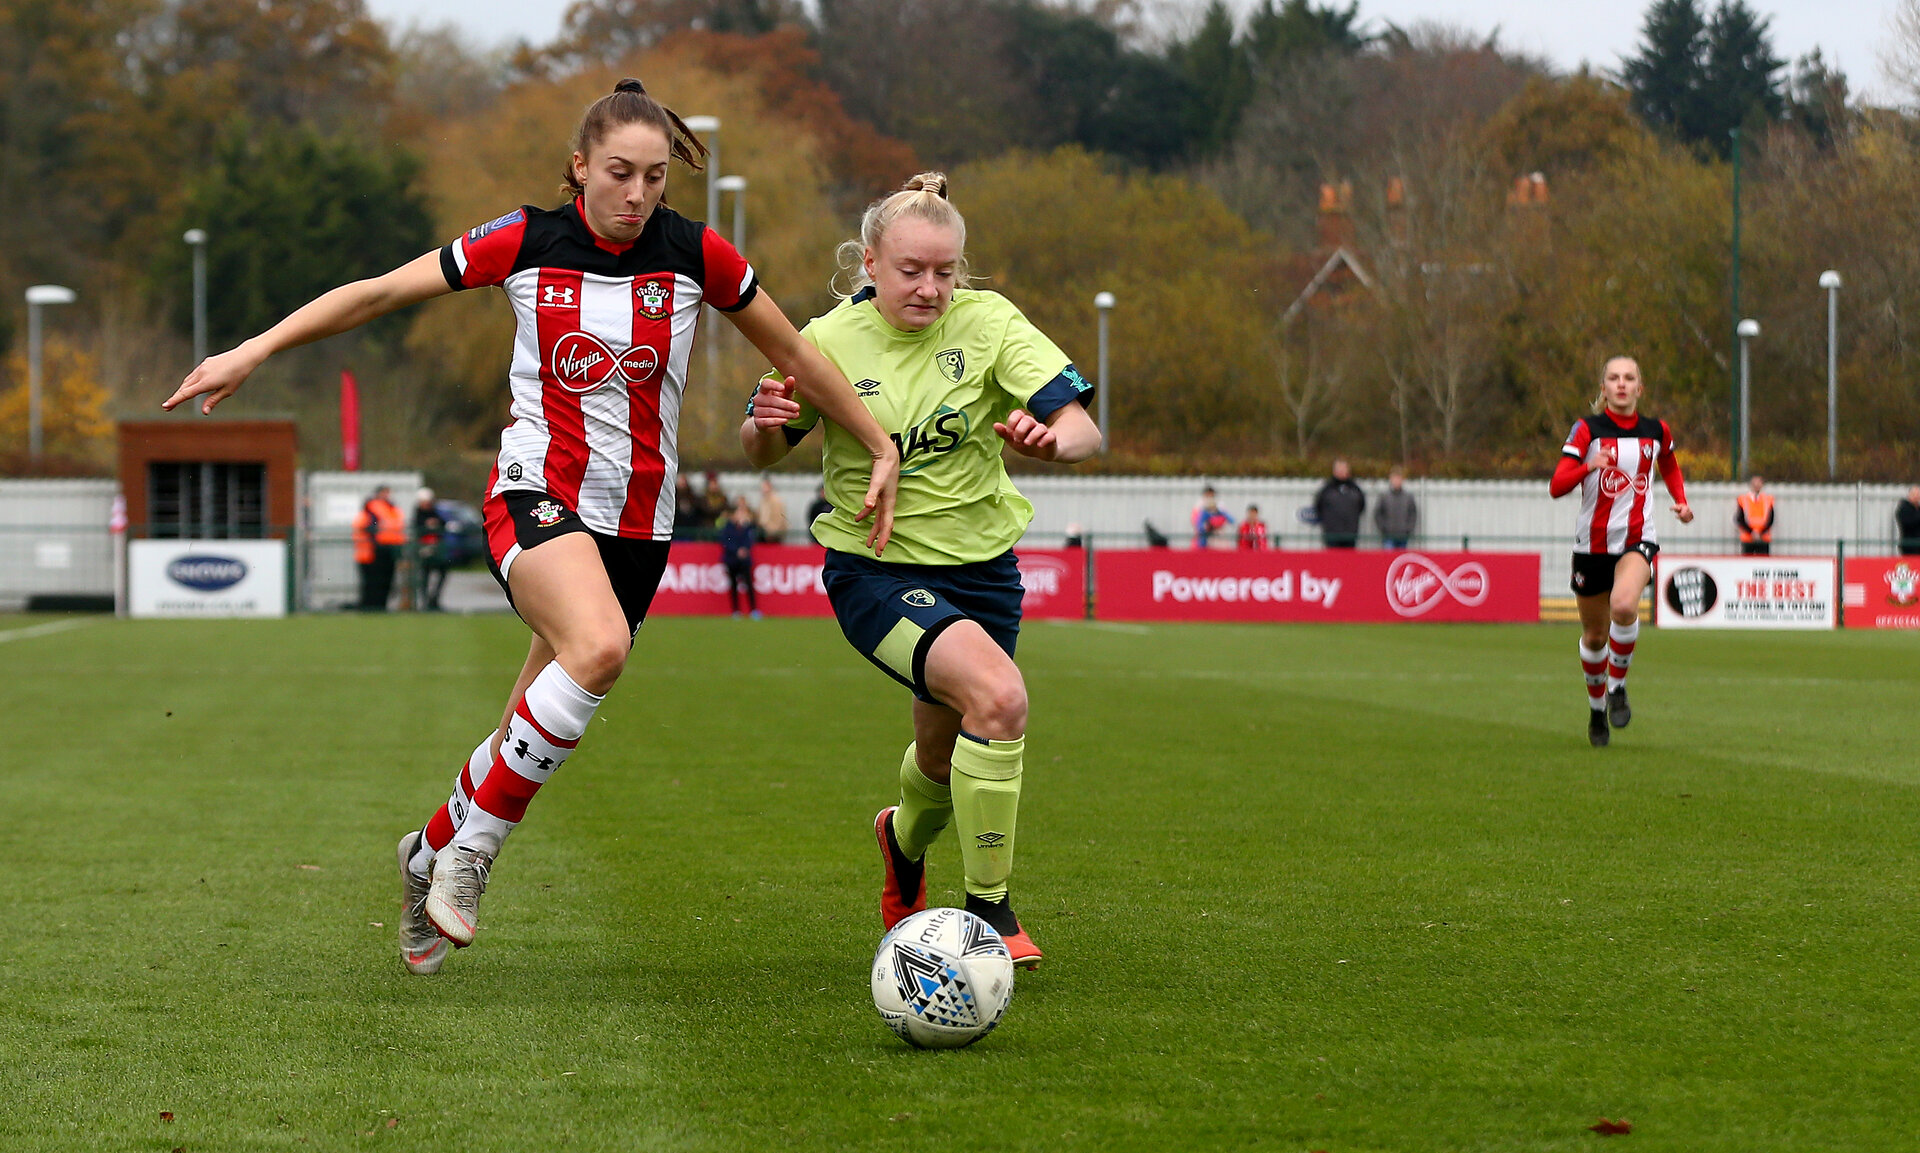 SOUTHAMPTON, ENGLAND - NOVEMBER 17: Ella Morris(L) of Southampton during Womens Hampshire Cup round 2 match between Southampton FC Women and AFC Bournemouth Women, at the Snows stadium AFC Totton, on November 17, 2019 in Southampton, England. (Photo by Matt Watson/Southampton FC via Getty Images)